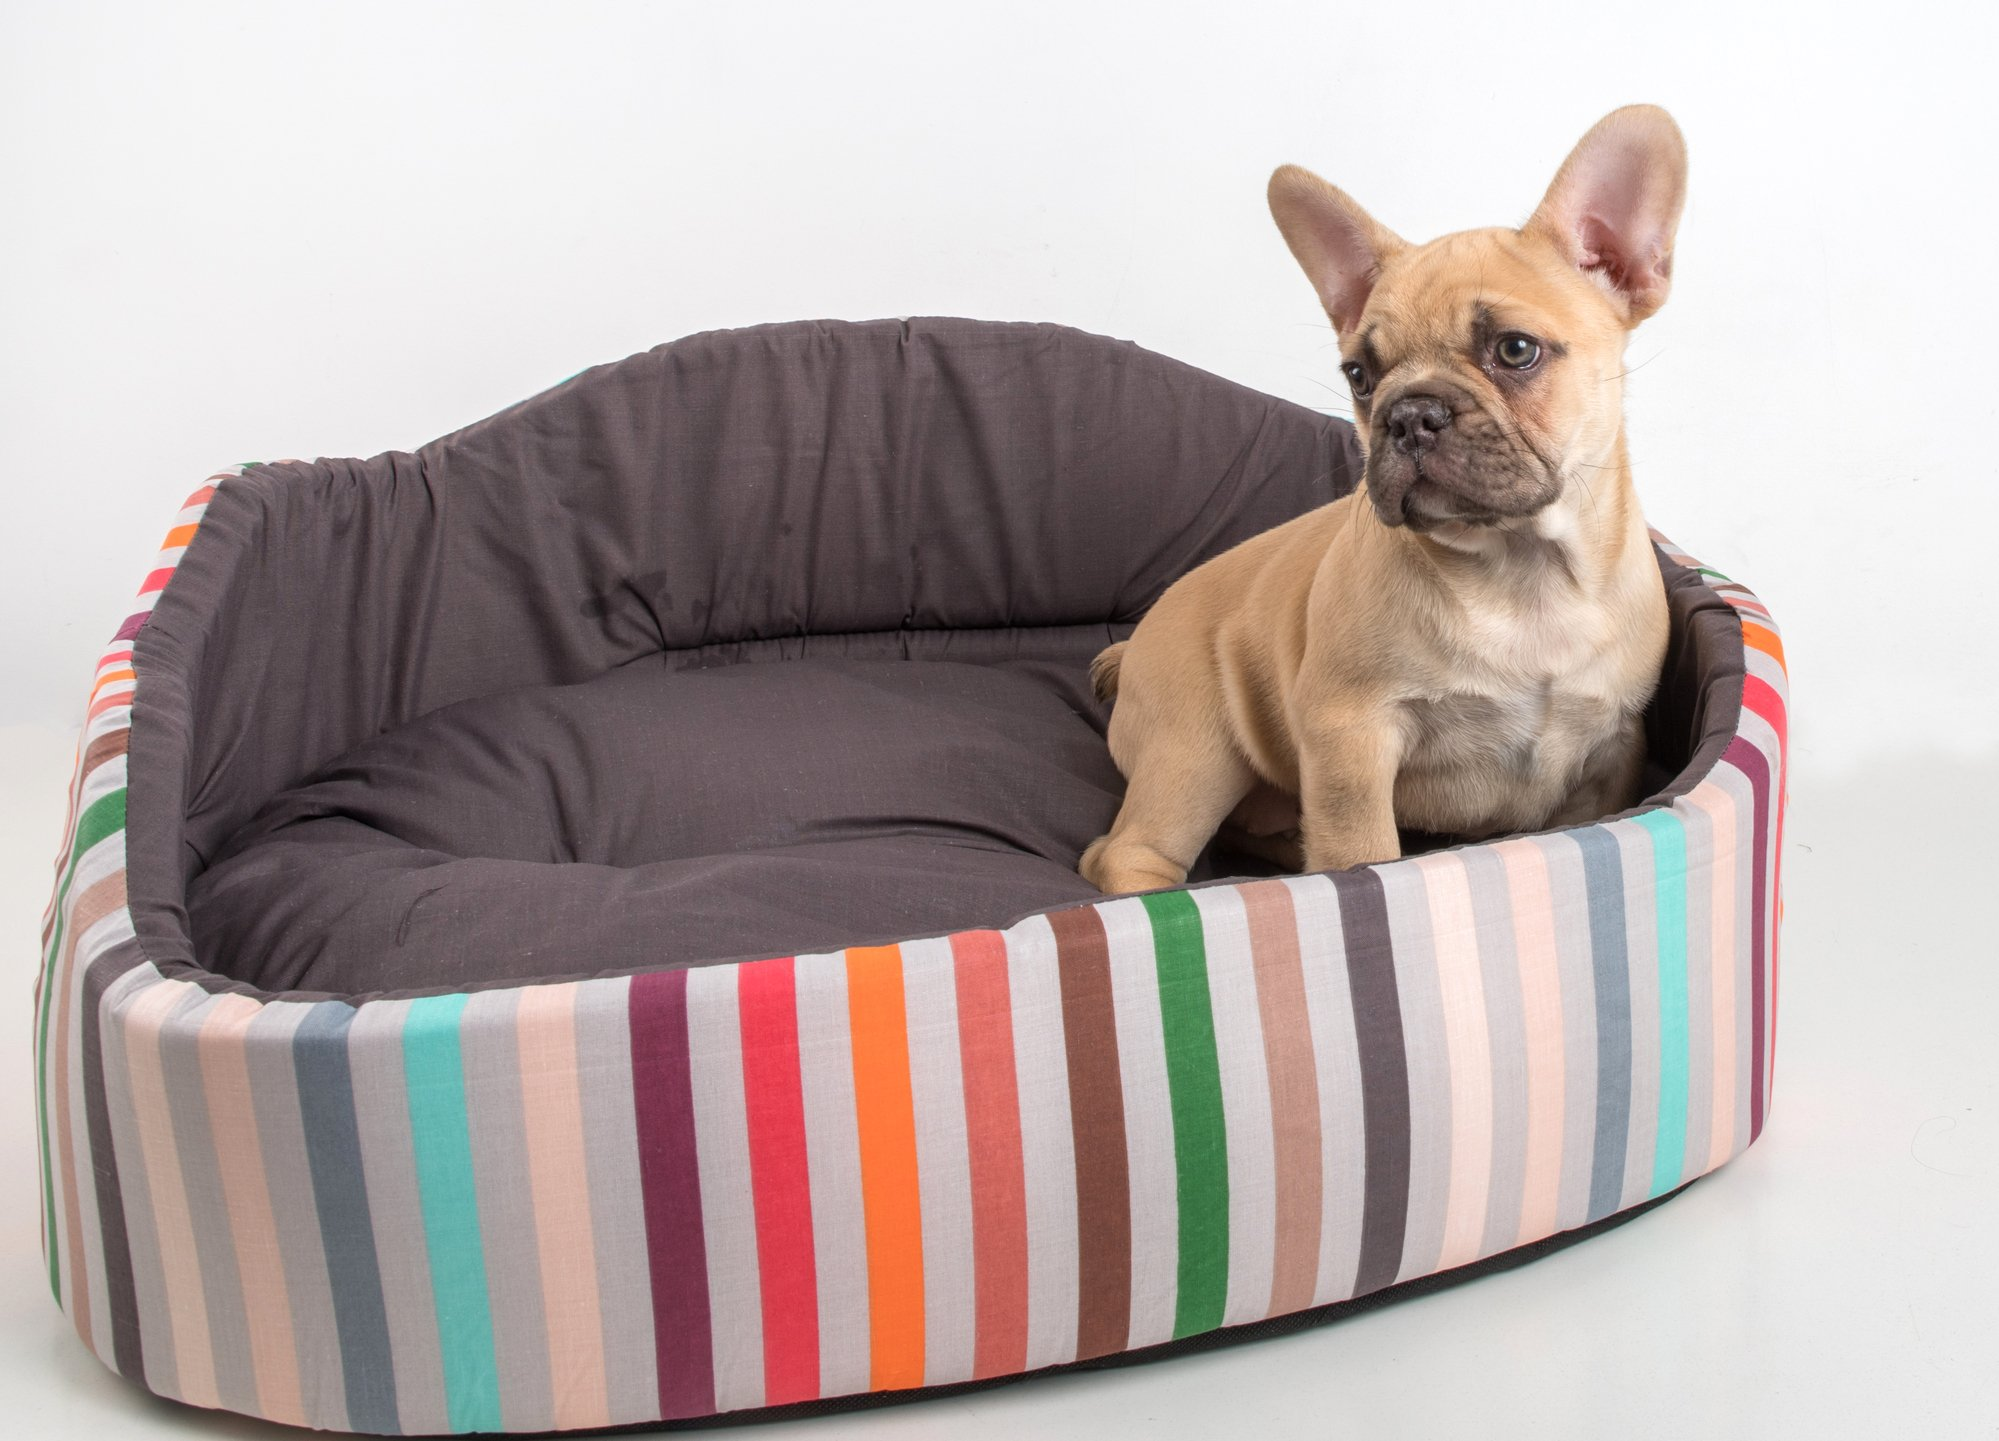 French Bulldog puppy resting on a dog bed.